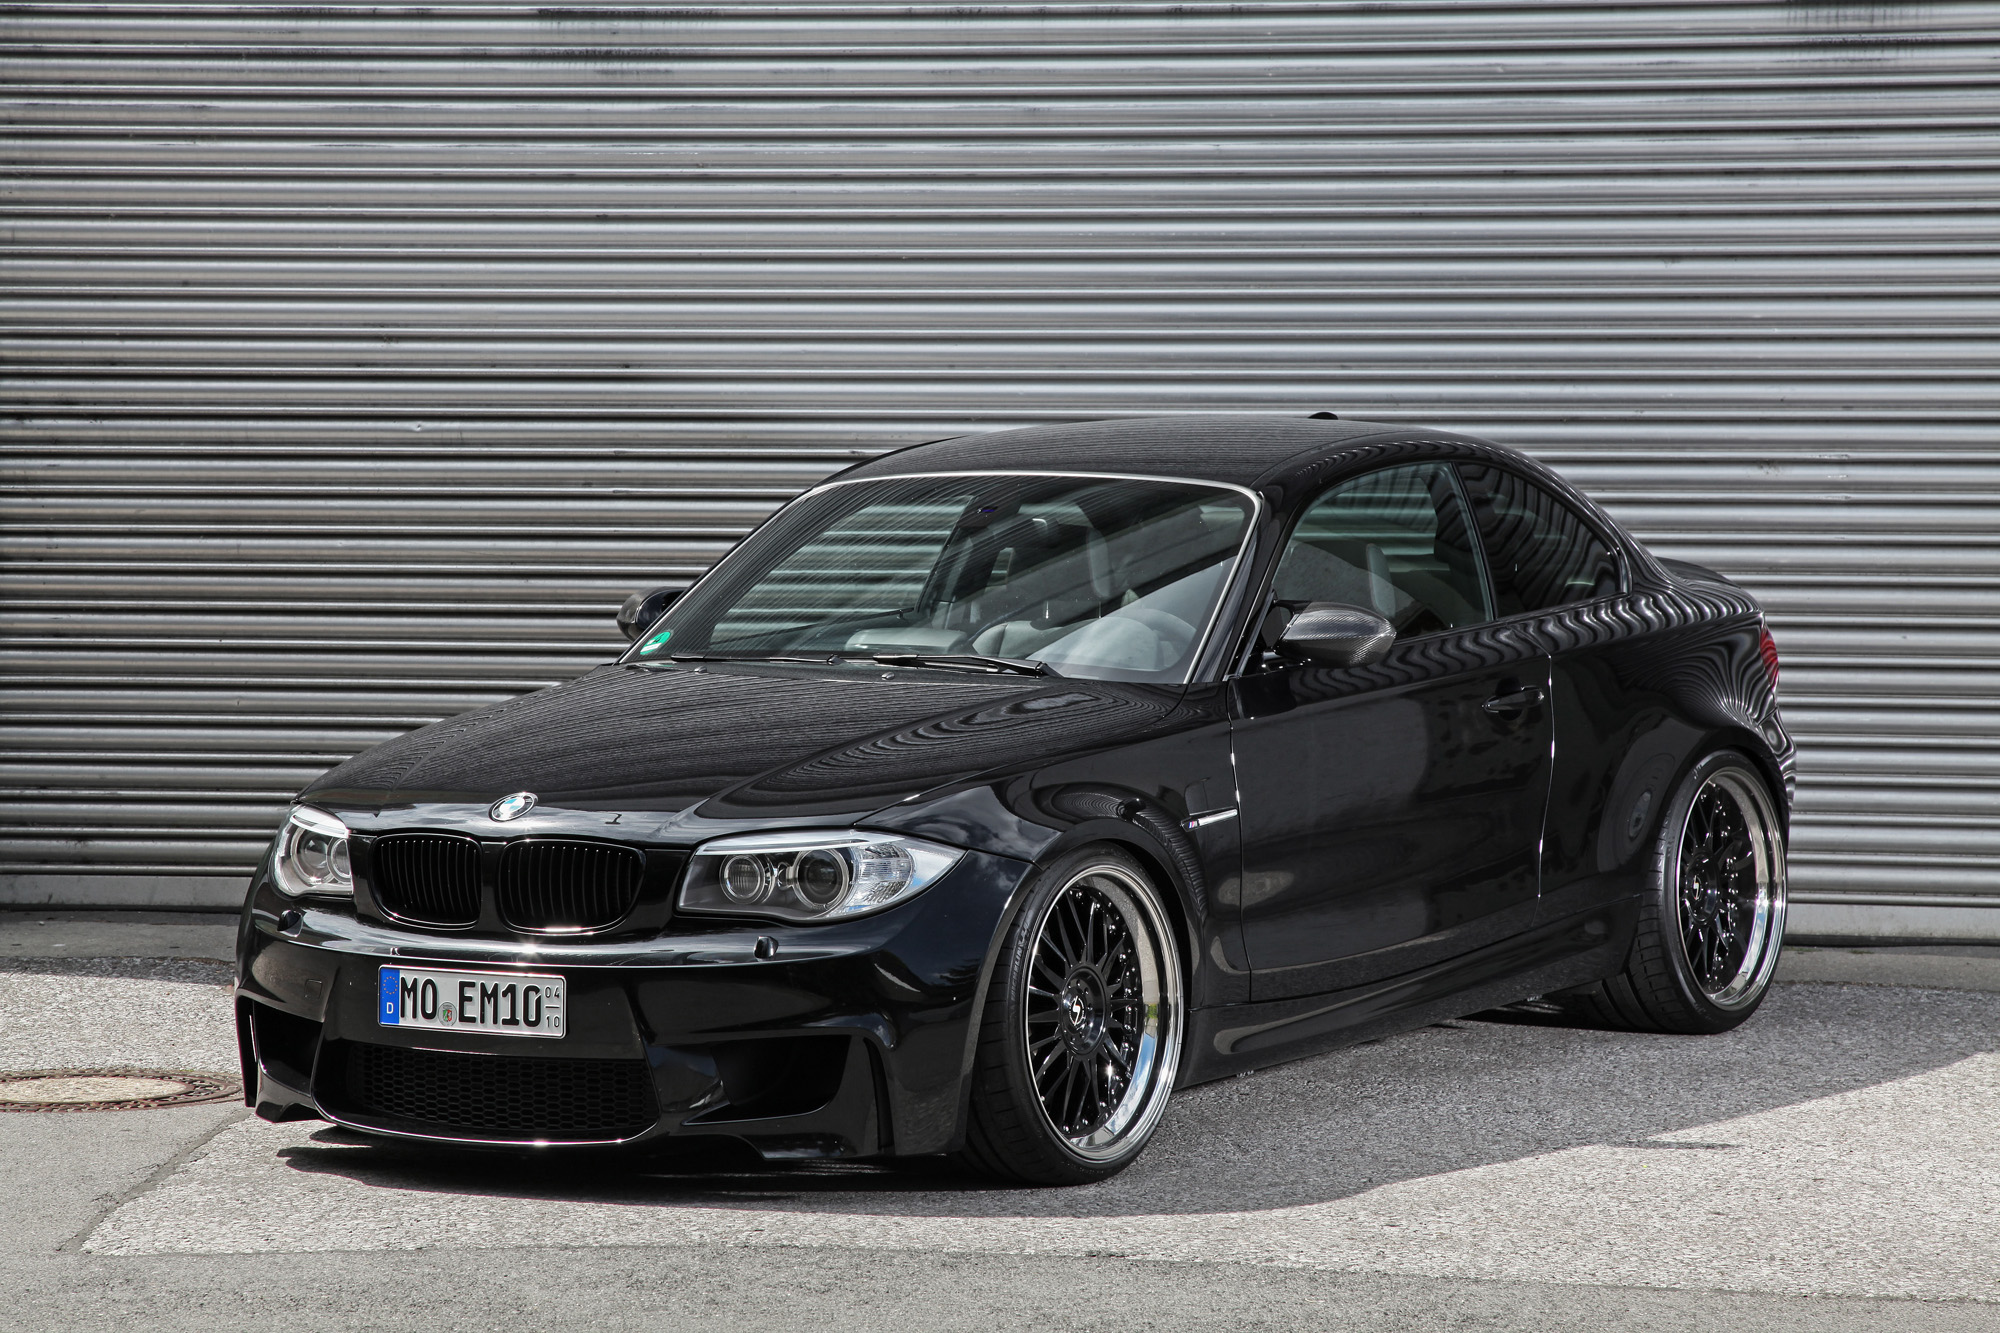 bmw-1er-m-coupé-e82-ok-chiptuning-06